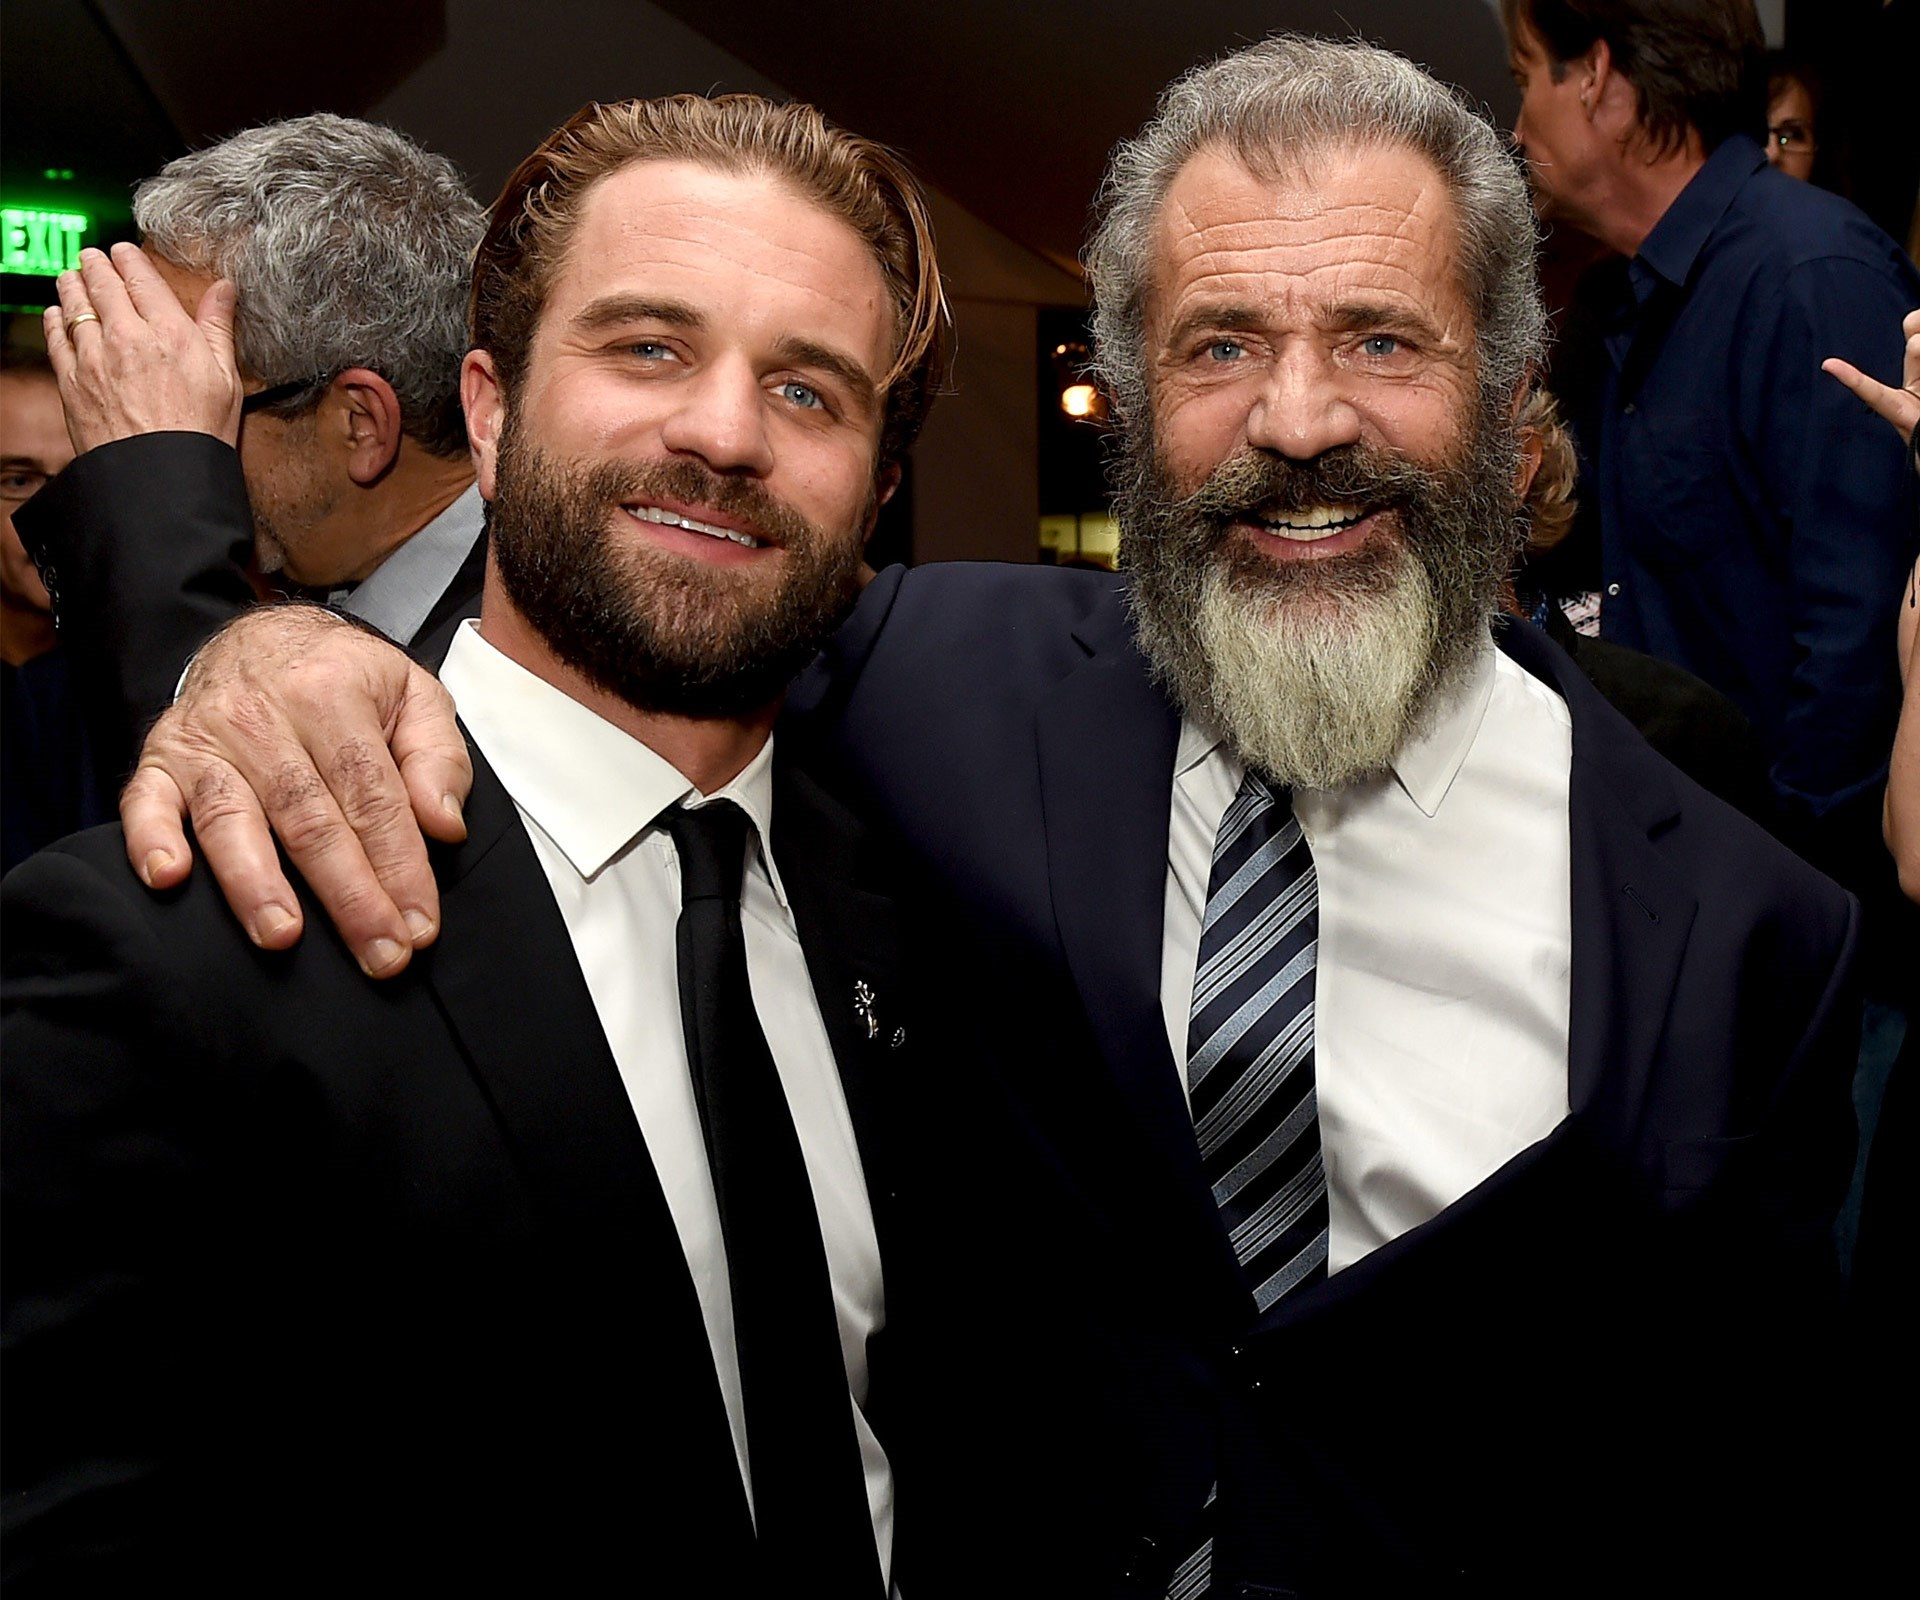 It's like looking into a mirror! Mel Gibson brought along his son Milo to the Hacksaw Ridge premiere, and the father-son duo couldn't have looked any close - literally! Milo is the star's fifth child with ex Robyn Denis Moore, with whom he has seven children. He also has a 6 year-old daughter and is expecting another child with girlfriend Rosalind Ross.